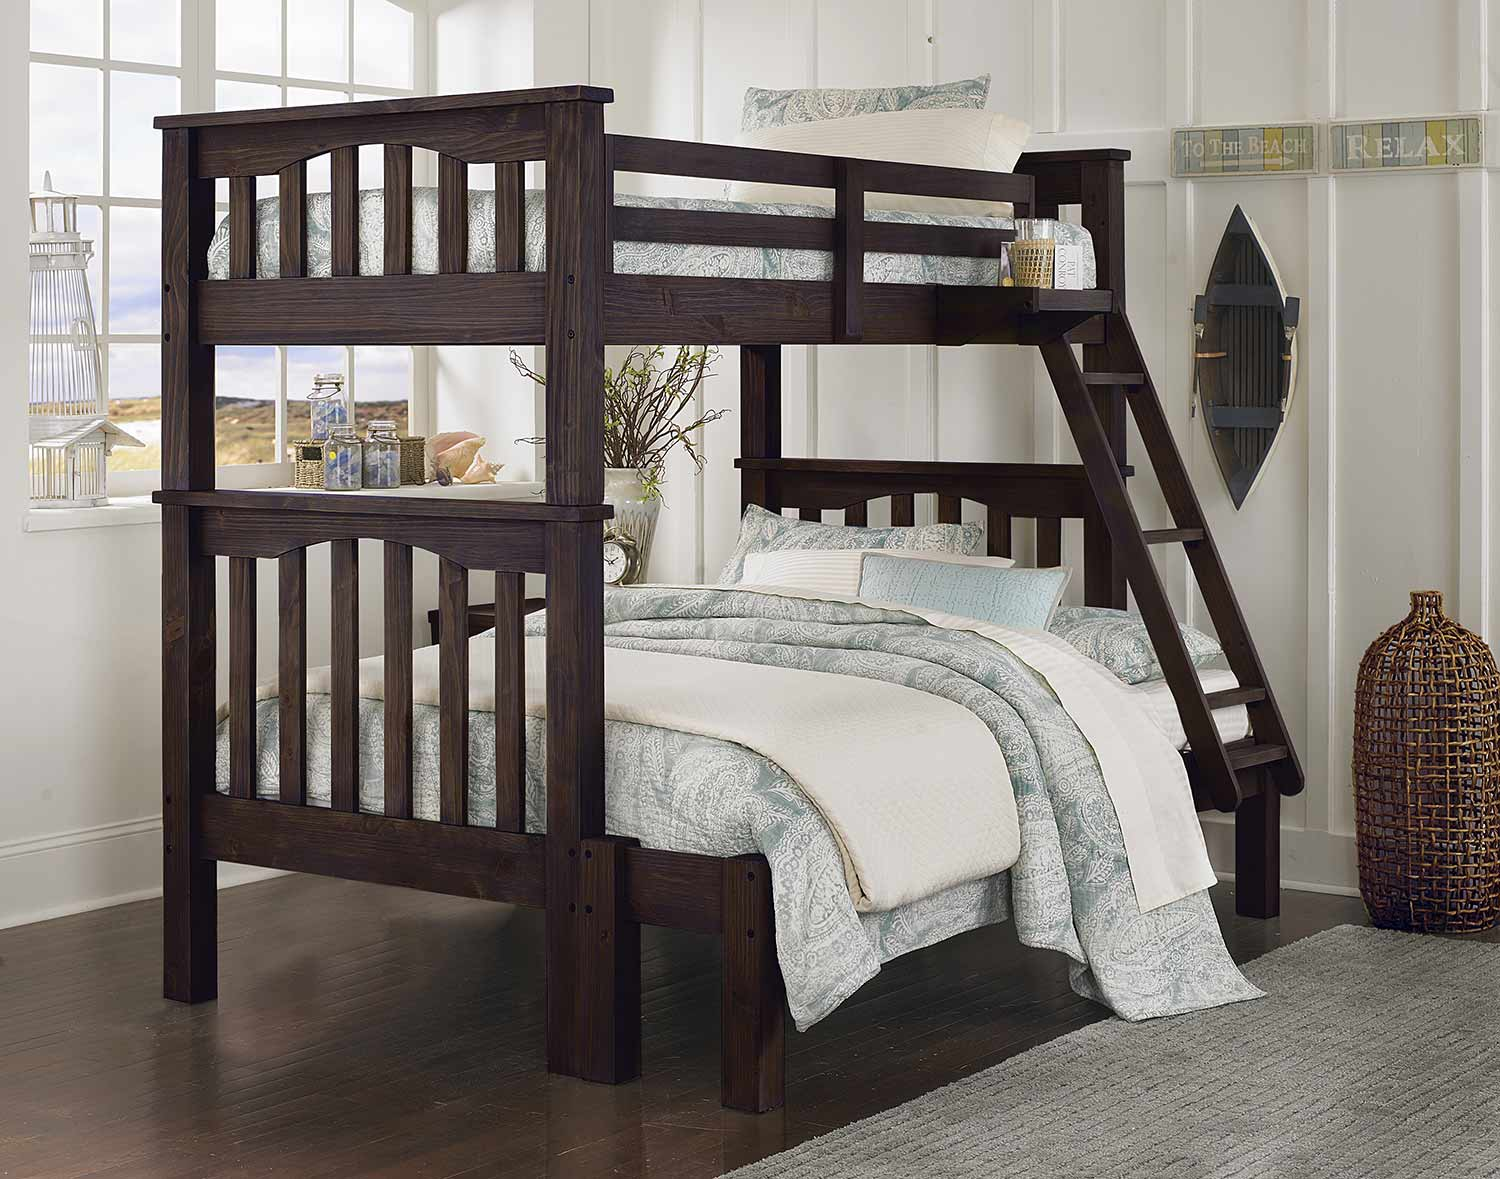 NE Kids Highlands Harper Twin Over Full Bunk (Full Extension) - Espresso